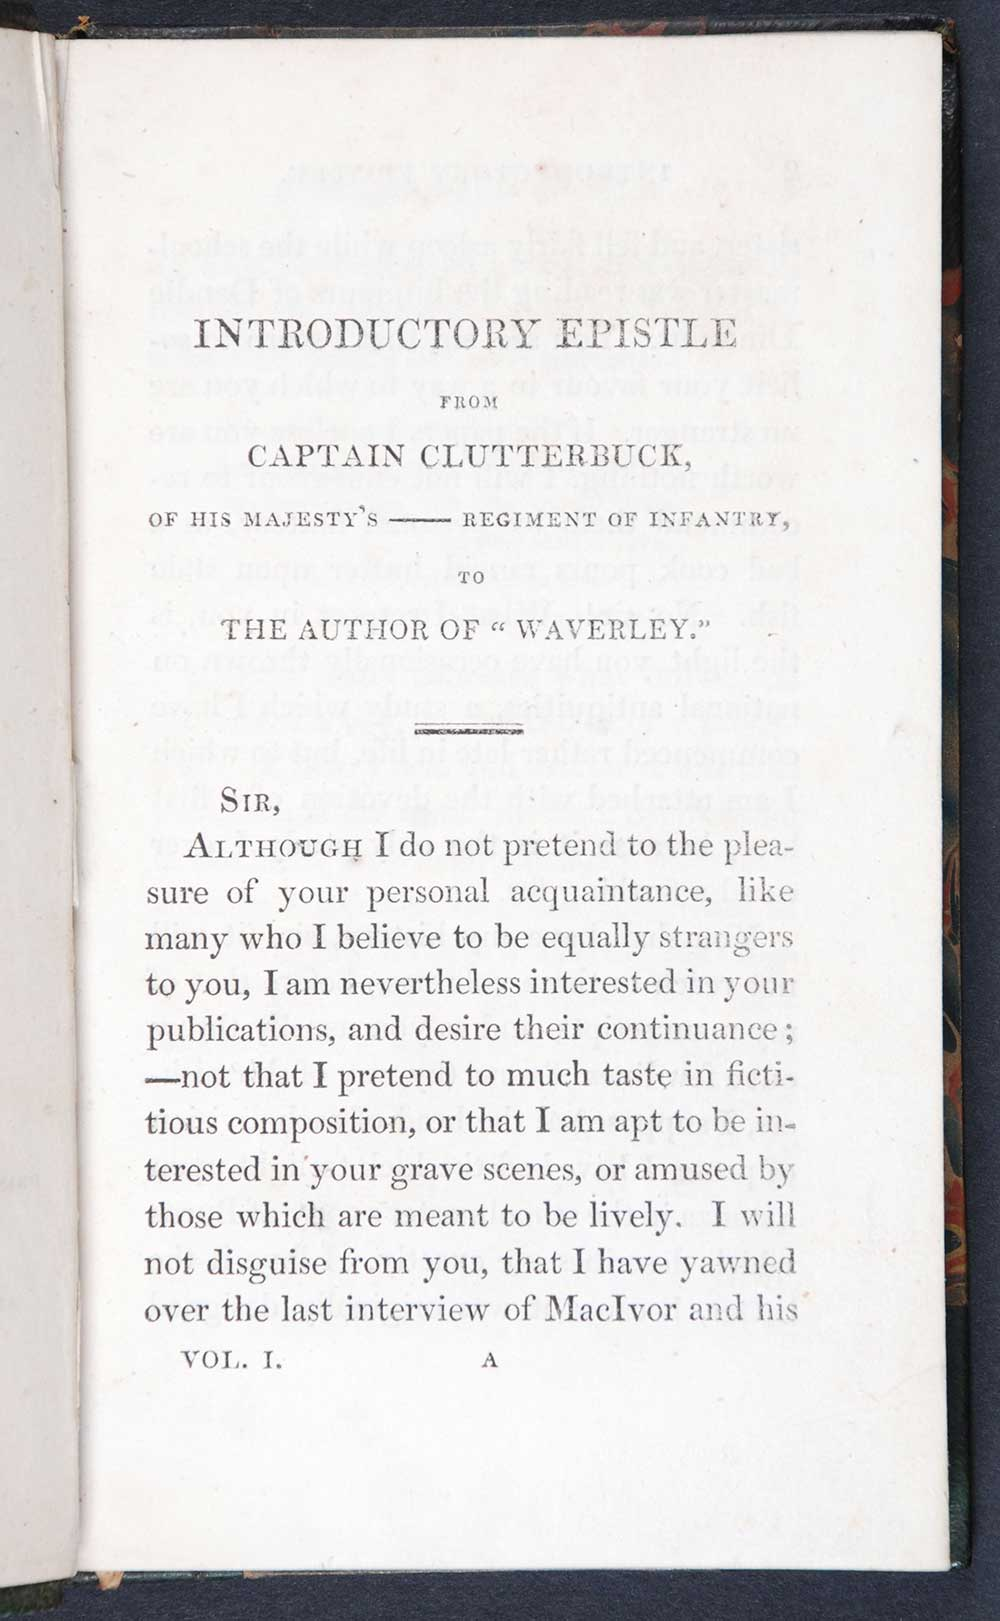 [Sir Walter Scott]. <em>The monastery: a romance.</em> [1st edition]. Edinburgh: Printed for Longman, Hurst, Rees, Orme and Brown, London; and for Archibald Constable and Company, and John Ballantyne, Edinburgh, 1820. Three volumes; Vol. 1 displayed.